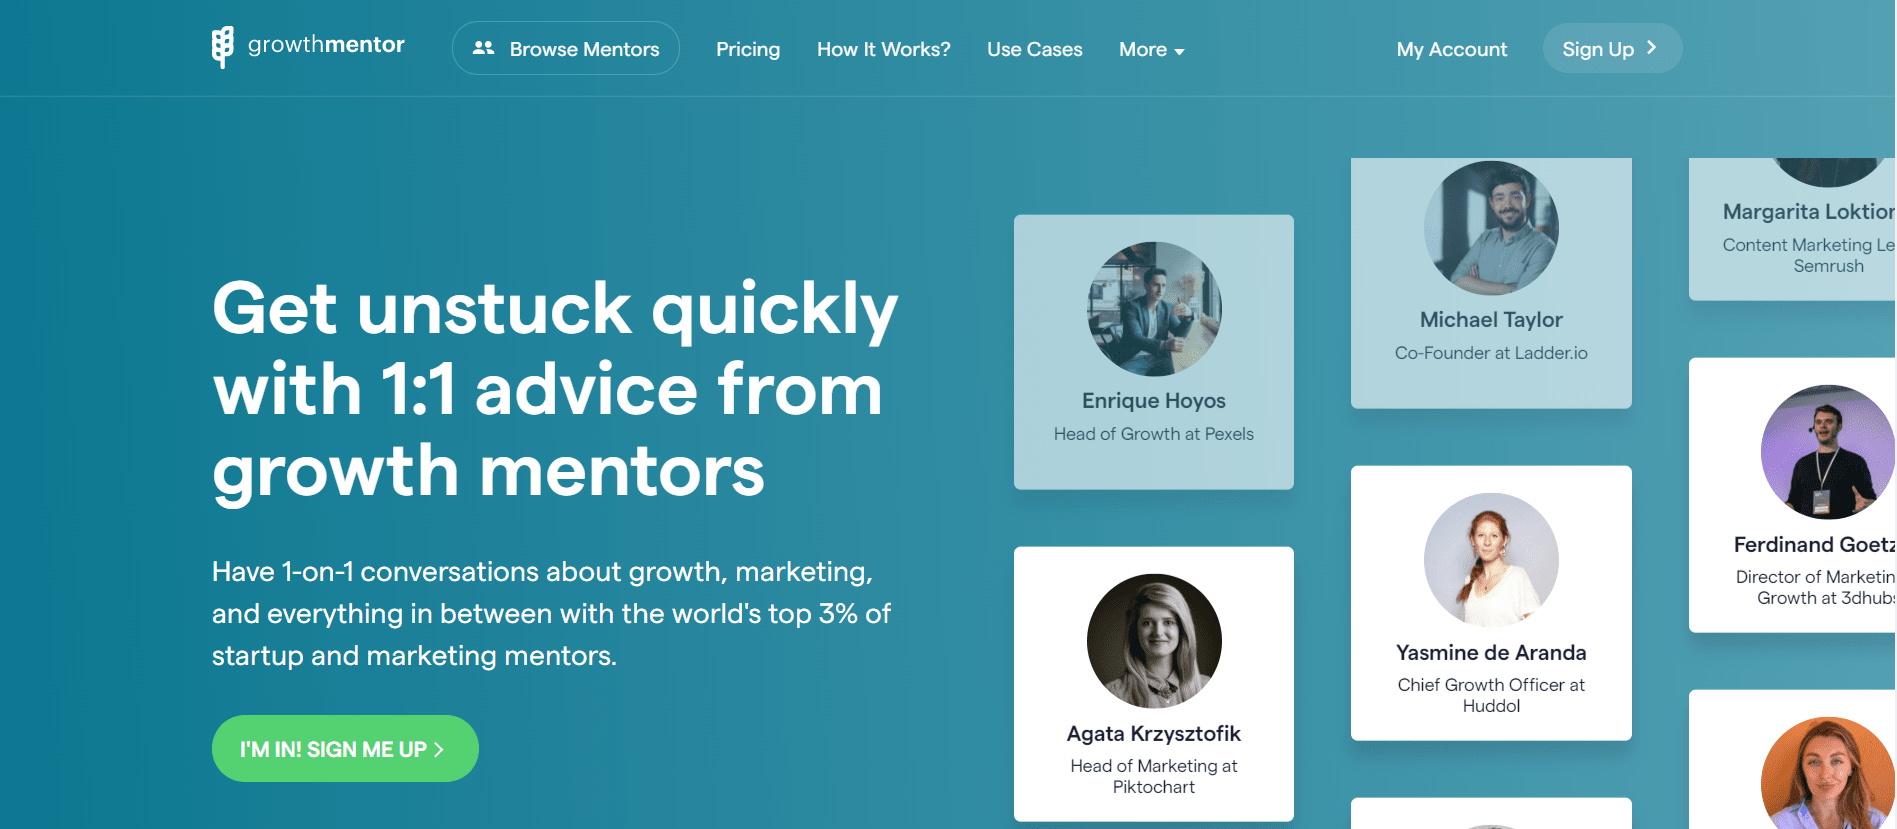 GrowthMentor's Landing Page